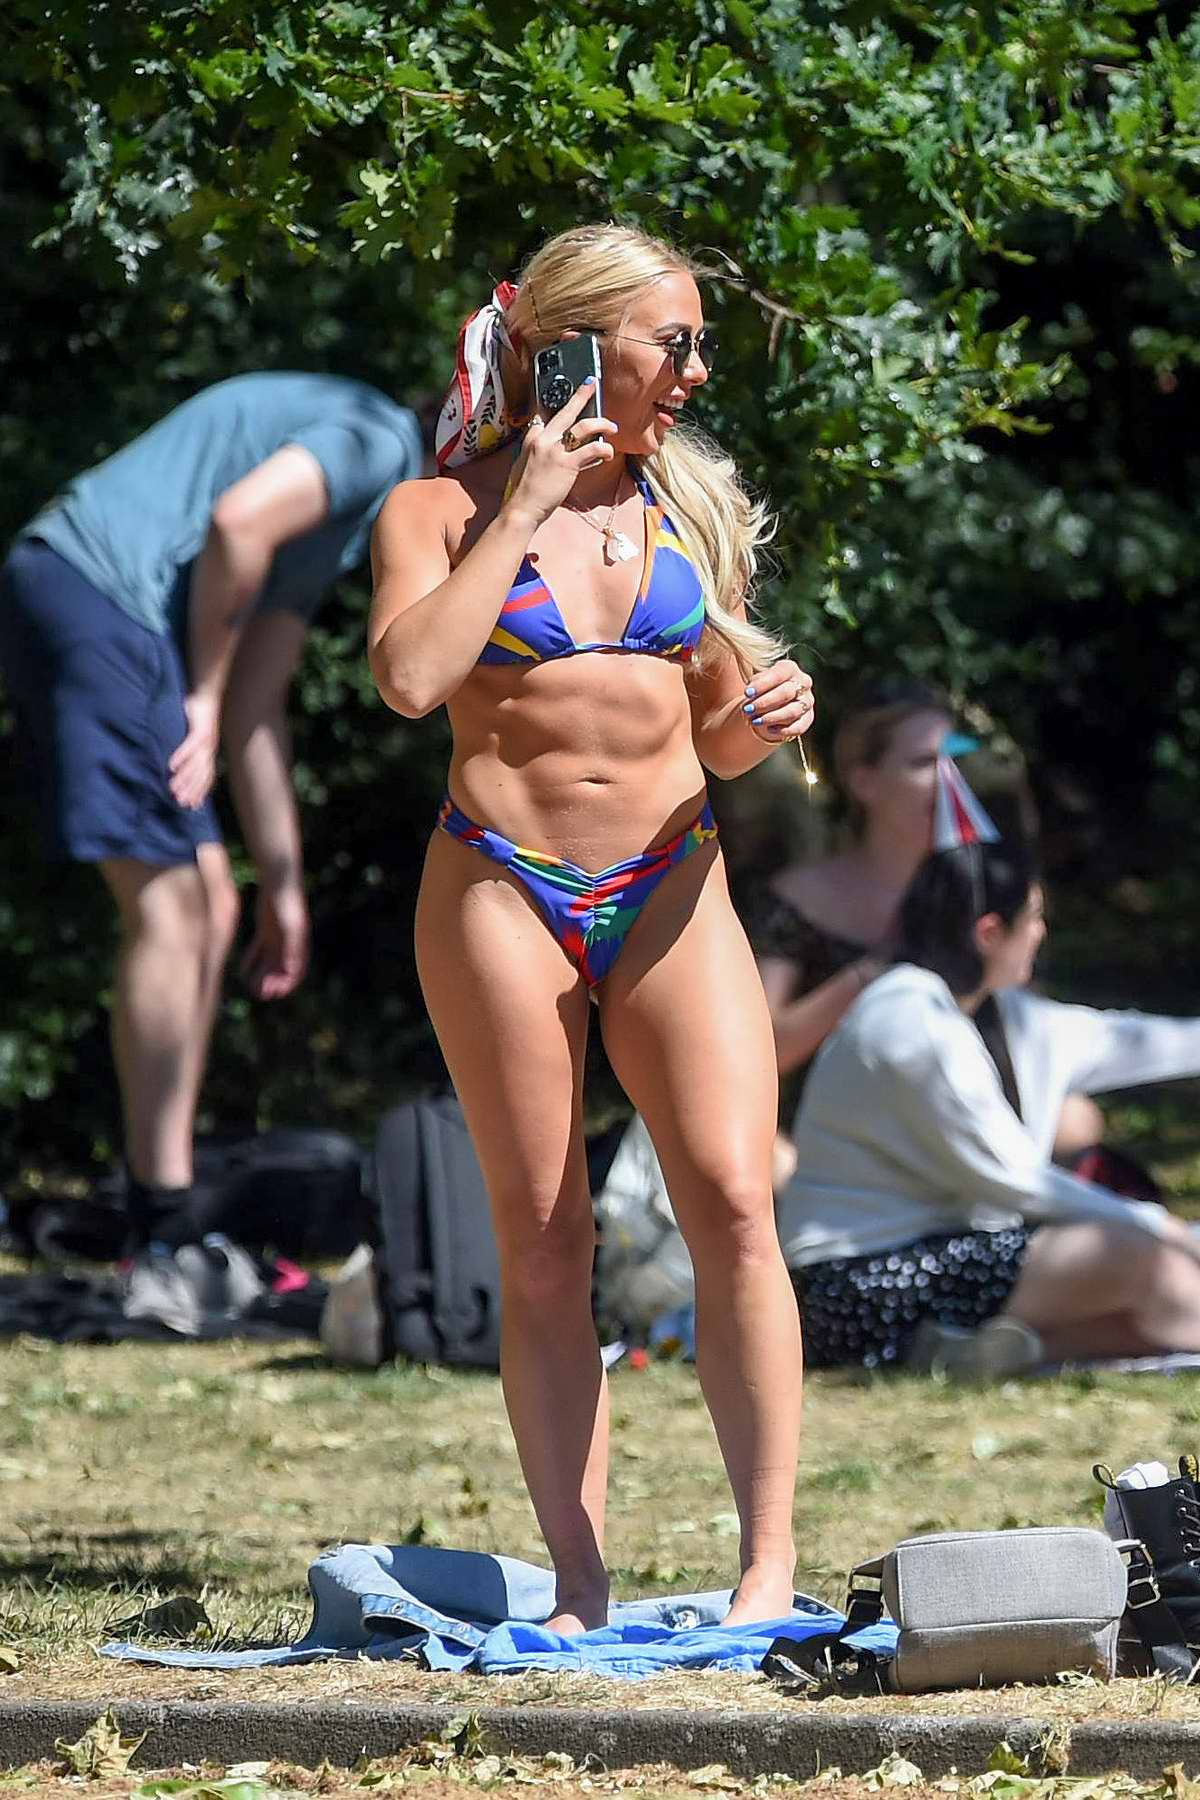 Gabby Allen slips into a colorful bikini while enjoying the sun with friends at a local park in London, UKith friends at a local park in London, UK